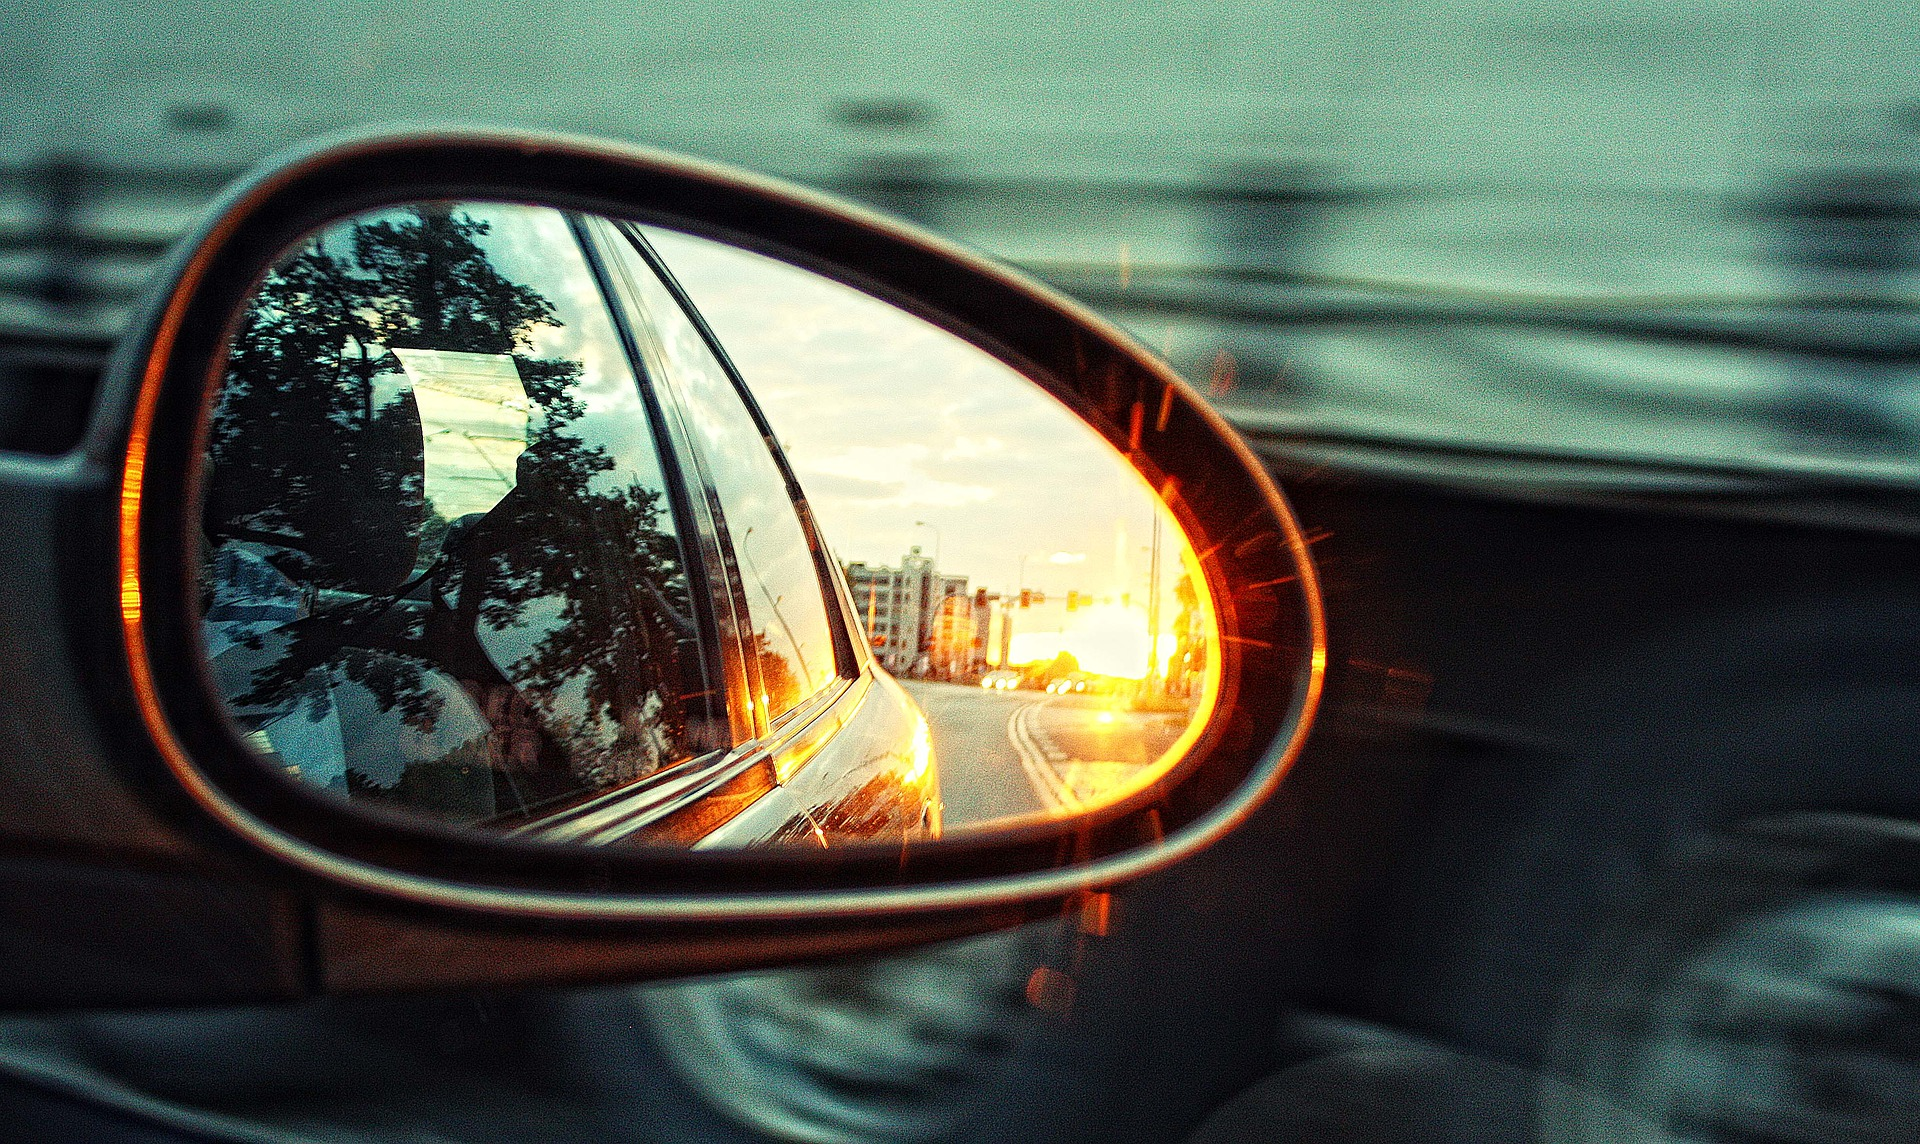 Photo of a car's side mirror, showing the road and a city behind the car